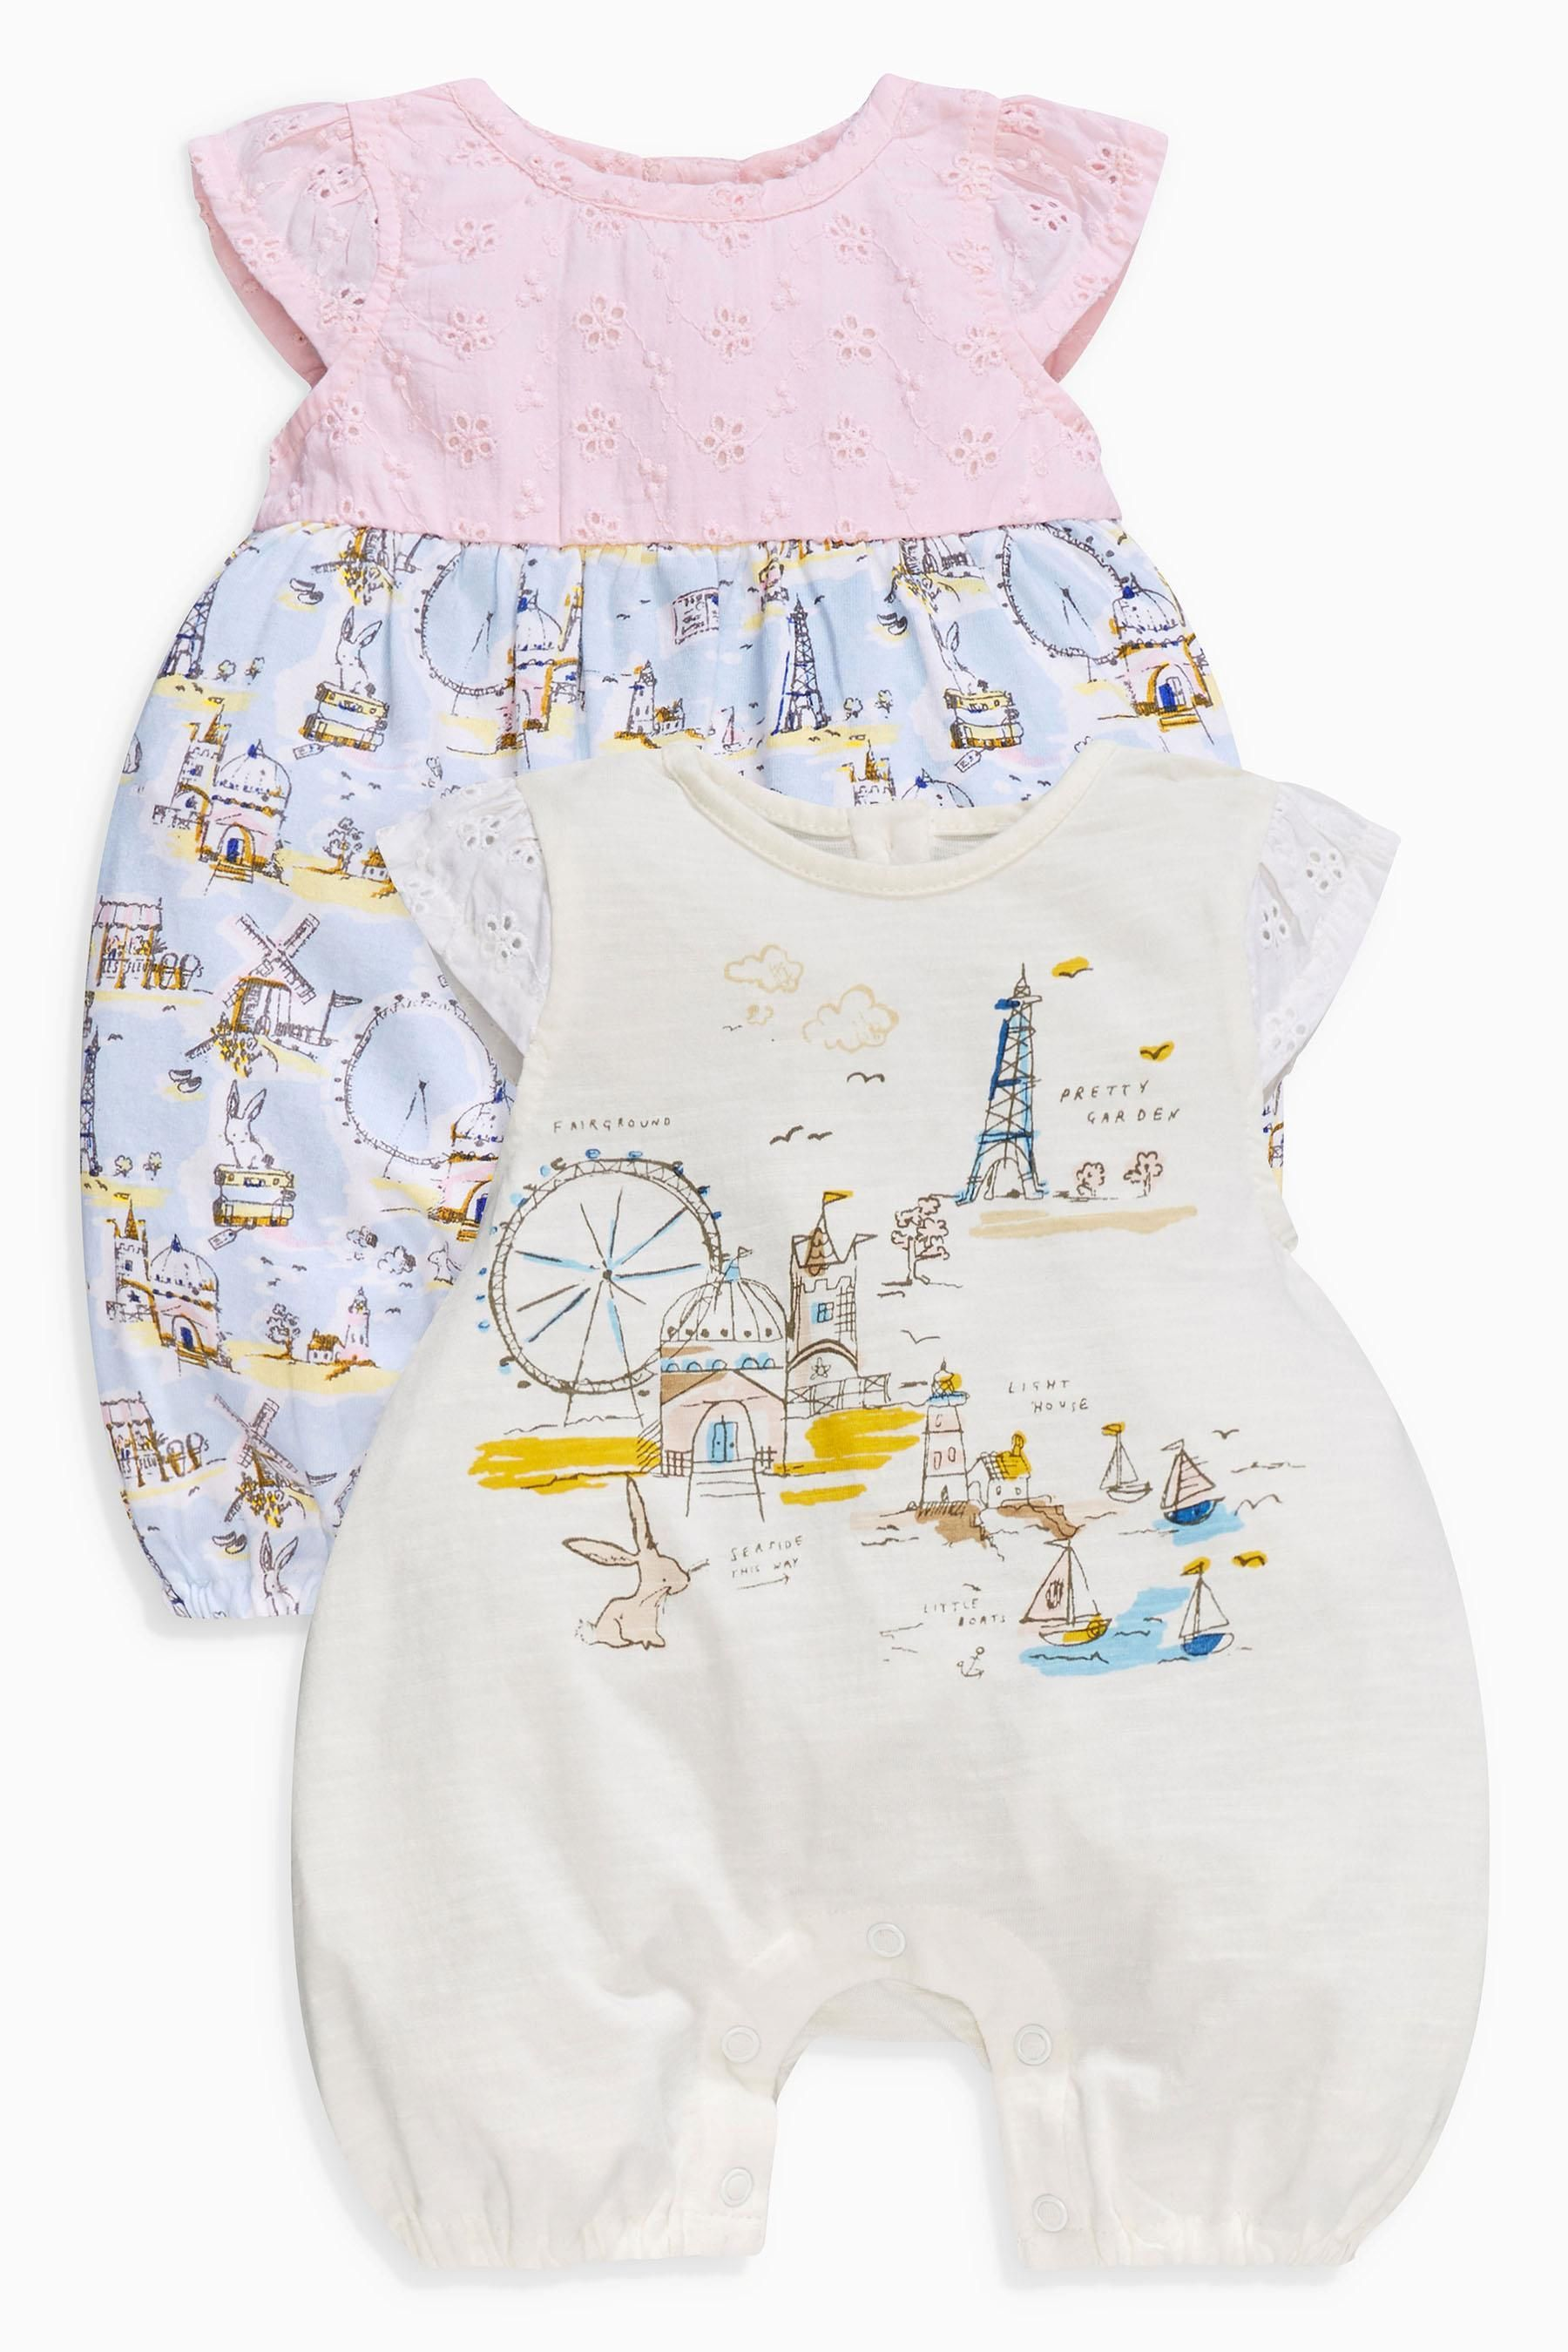 dbdf4e3ec4a Buy Ecru Coastal Scene Rompers Two Pack (0mths-2yrs) from the Next UK online  shop